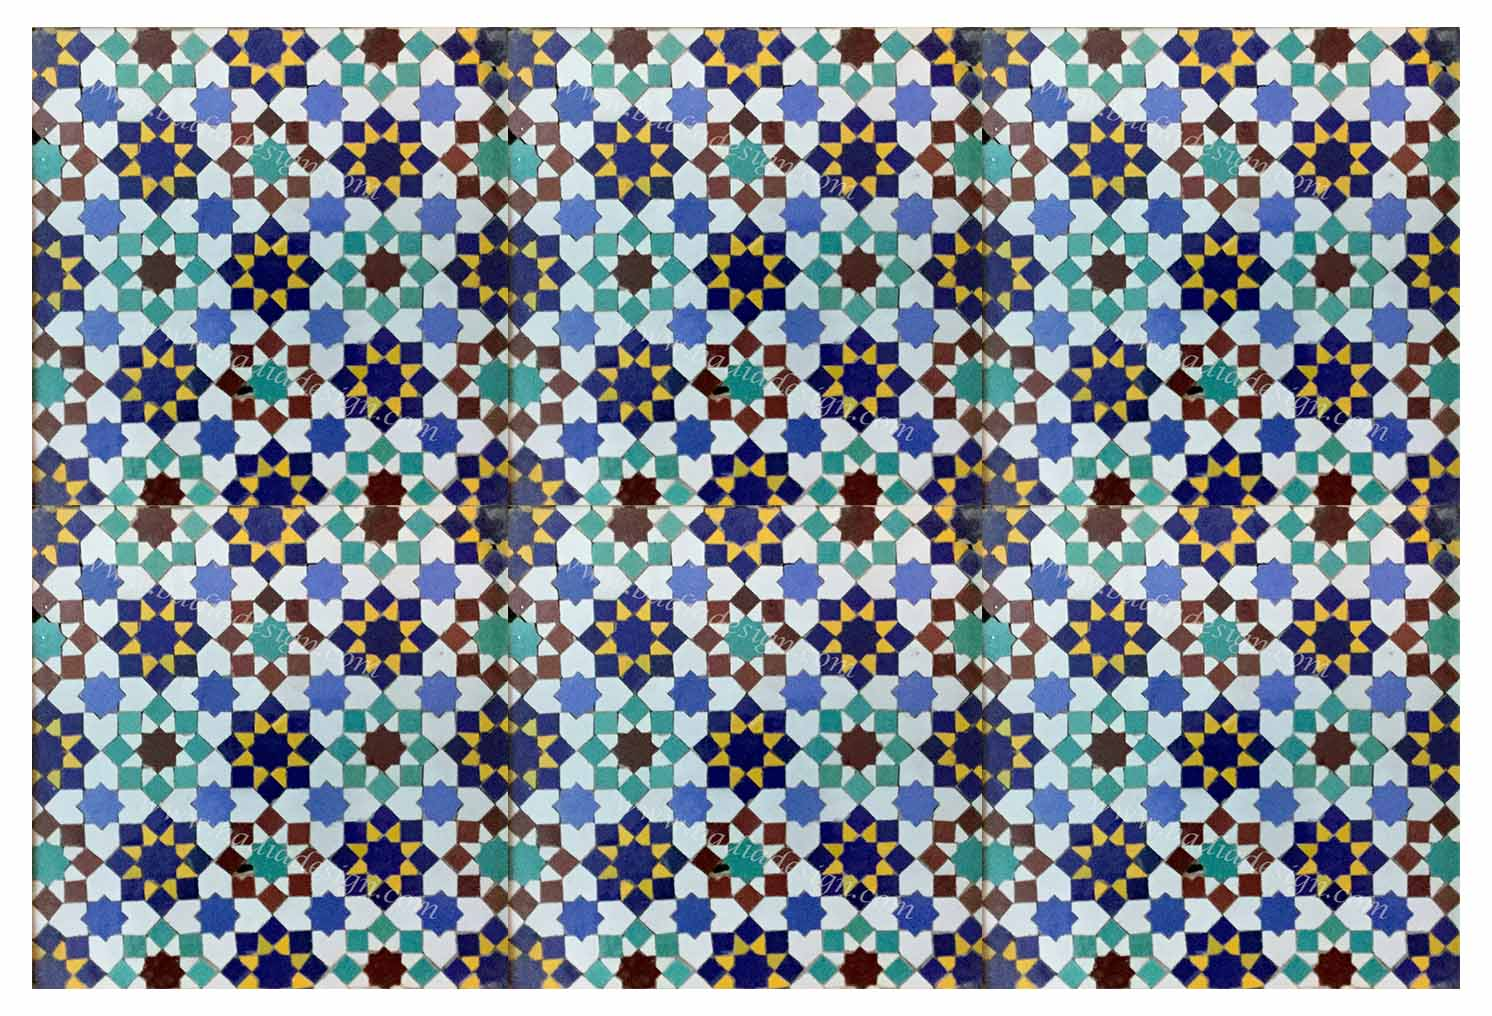 Moroccan Mosaic Hand Painted Tile from Badia Design Inc.